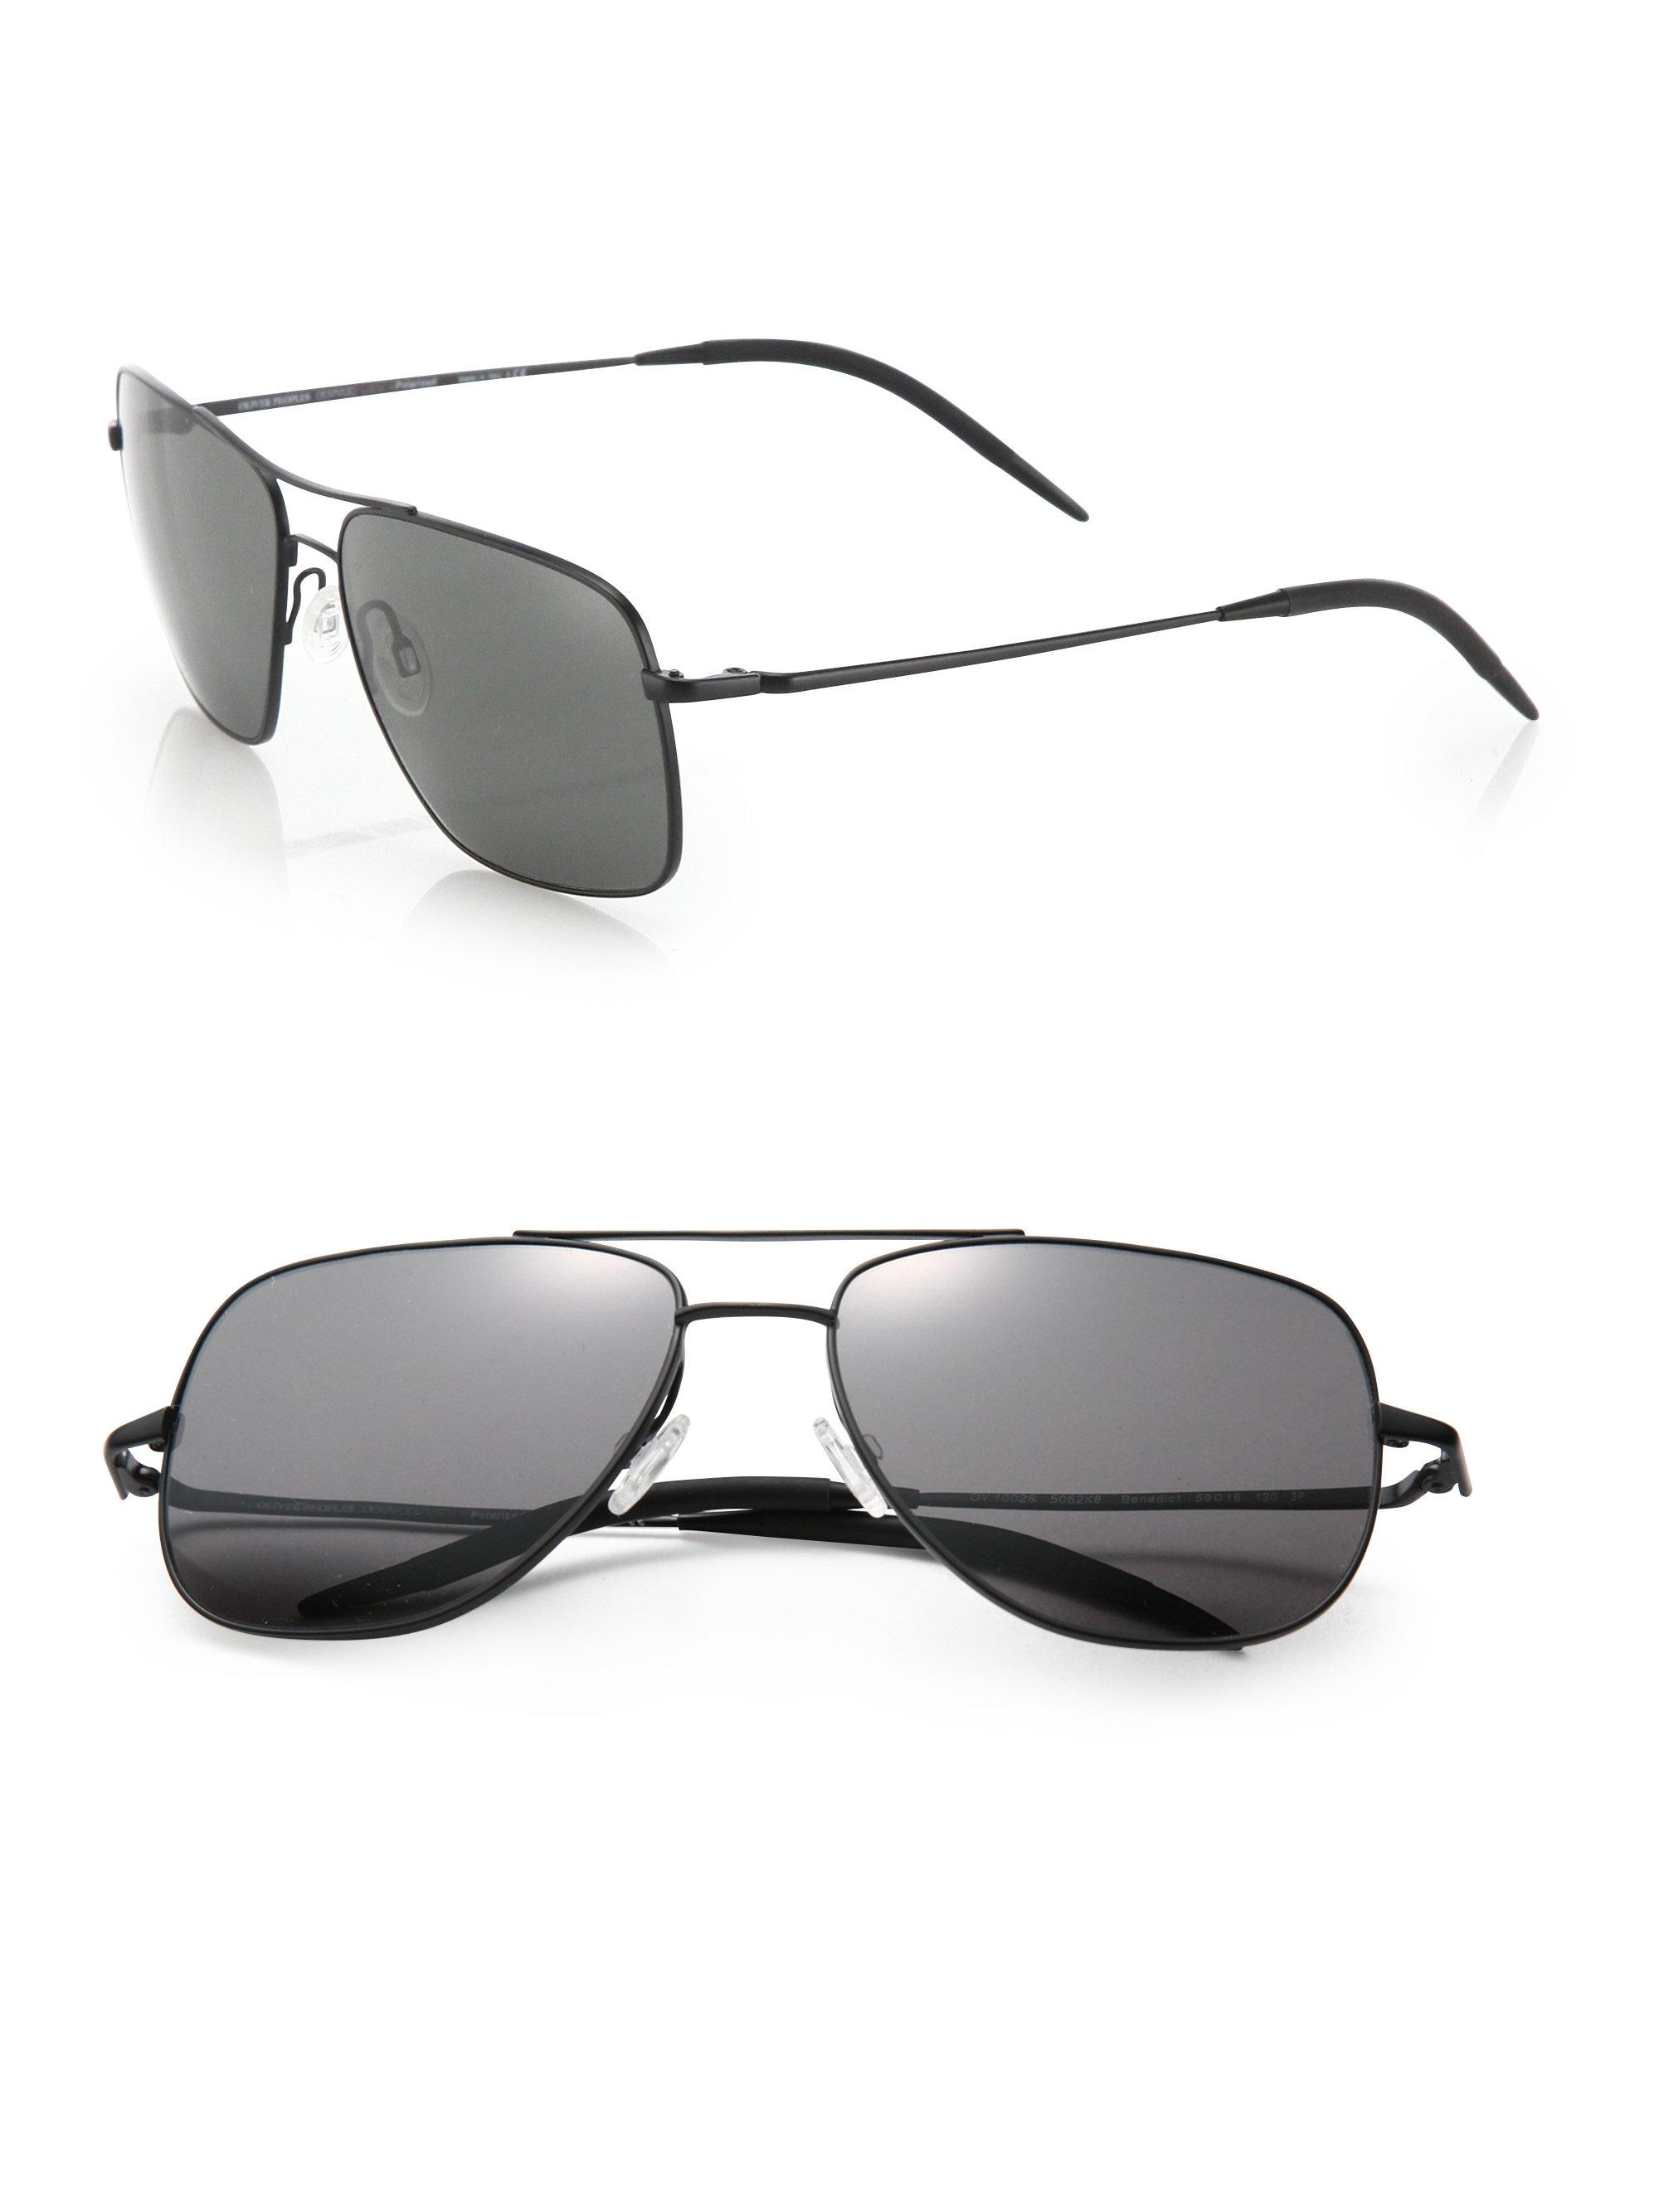 33ddd618 Oliver Peoples Black Clifton 58mm Square Aviator Sunglasses for men